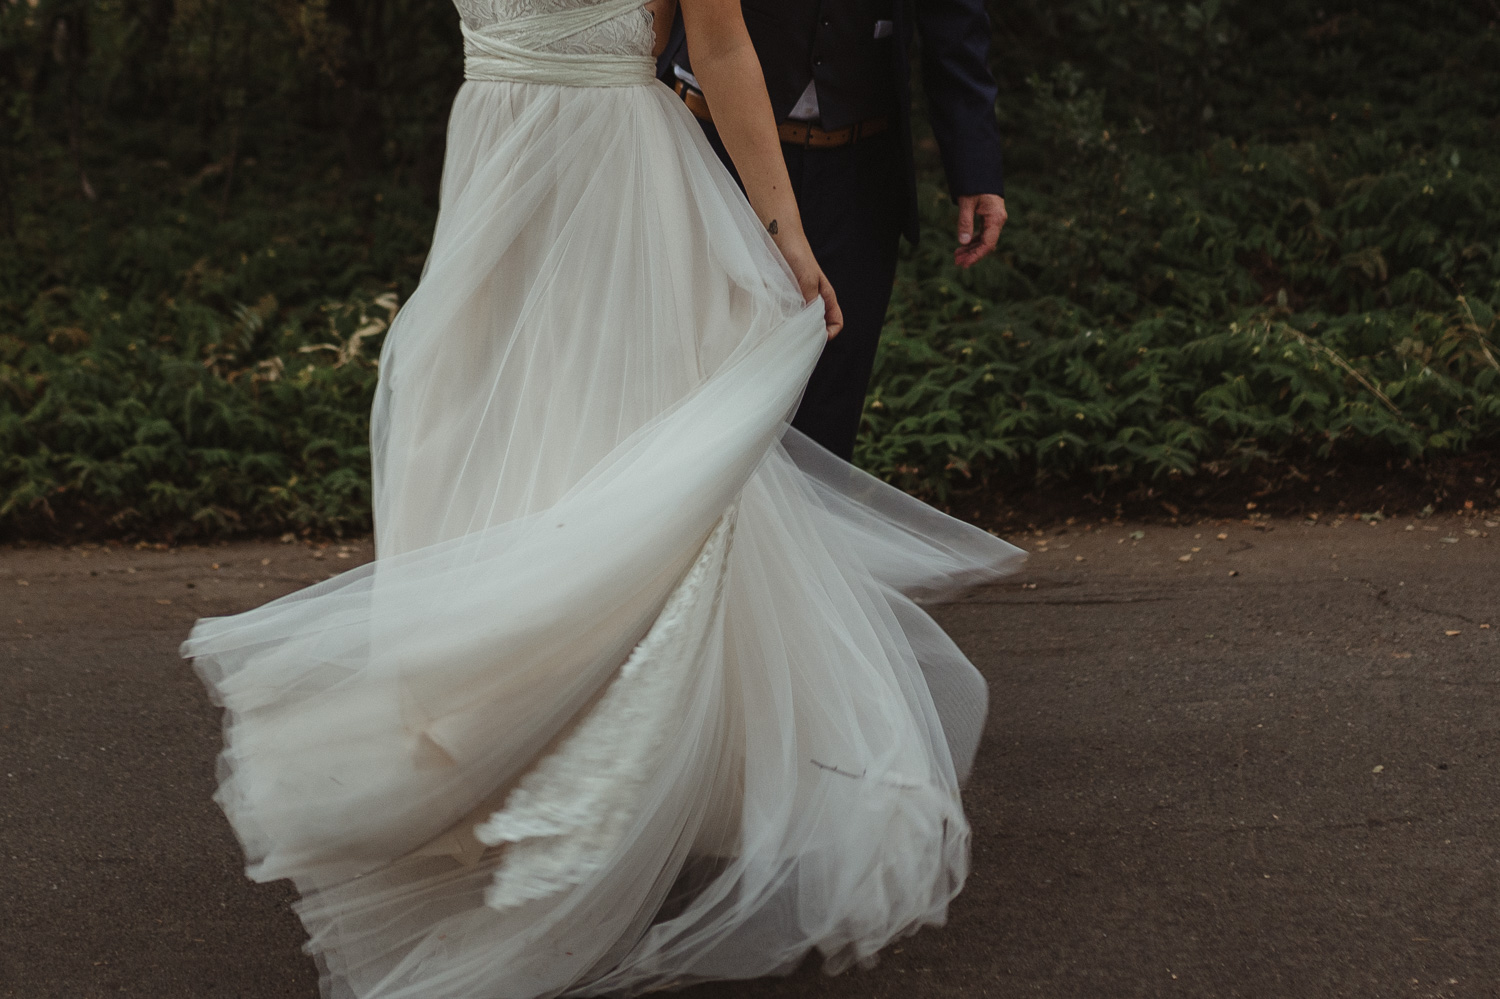 Wedgewood Sequoia Mansion wedding dress photo